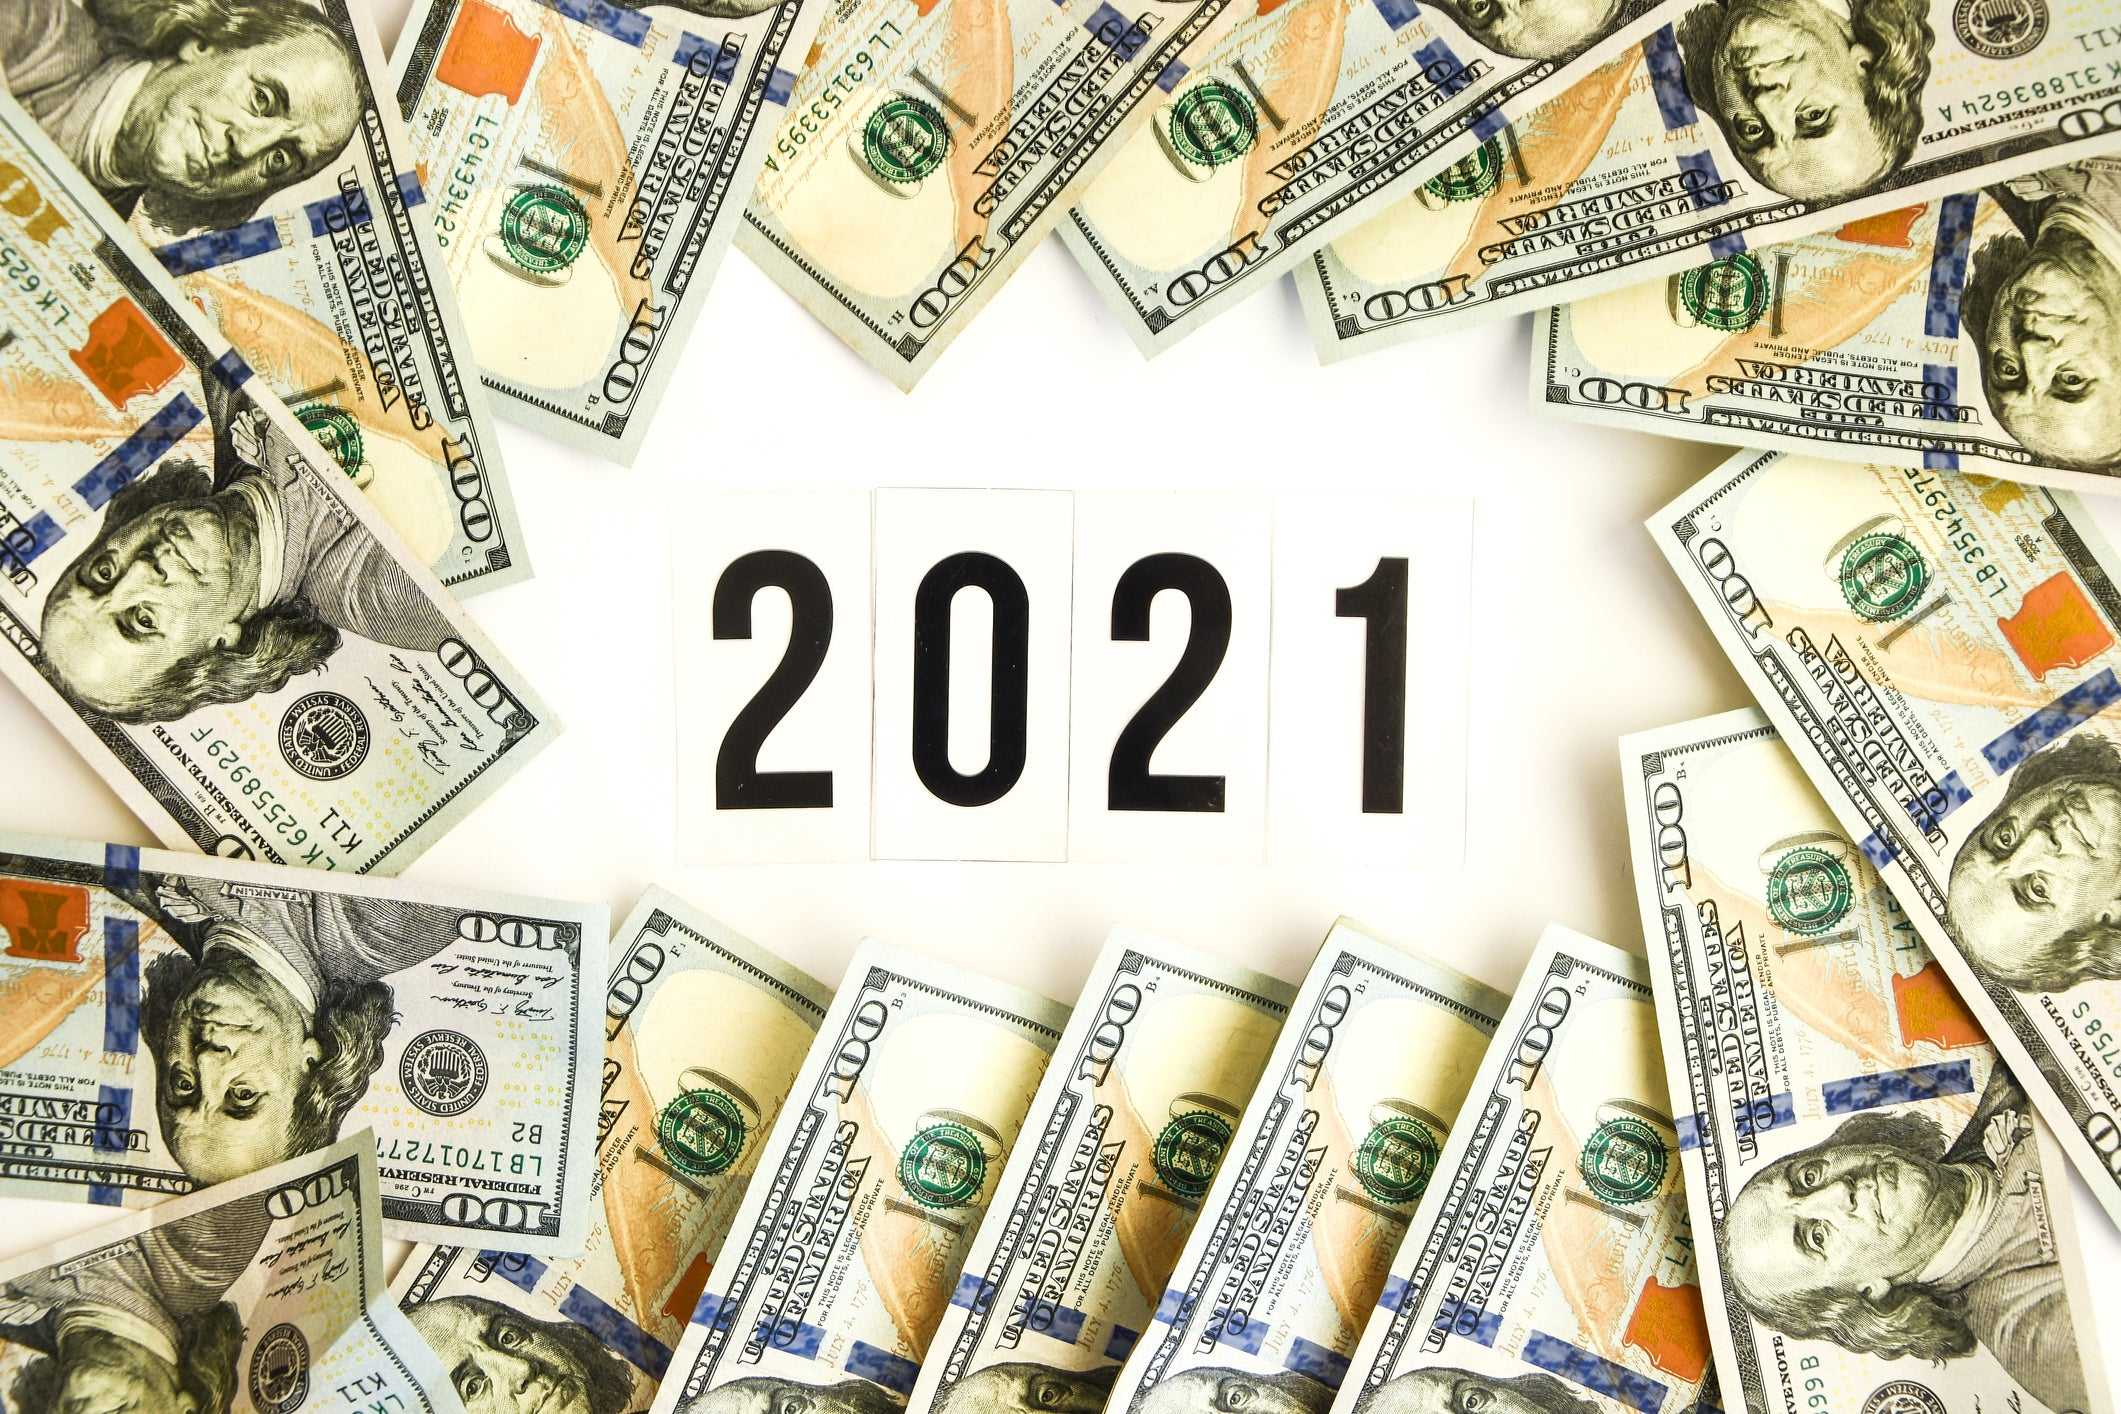 How To Deal With Payday Loan Debt In 2021